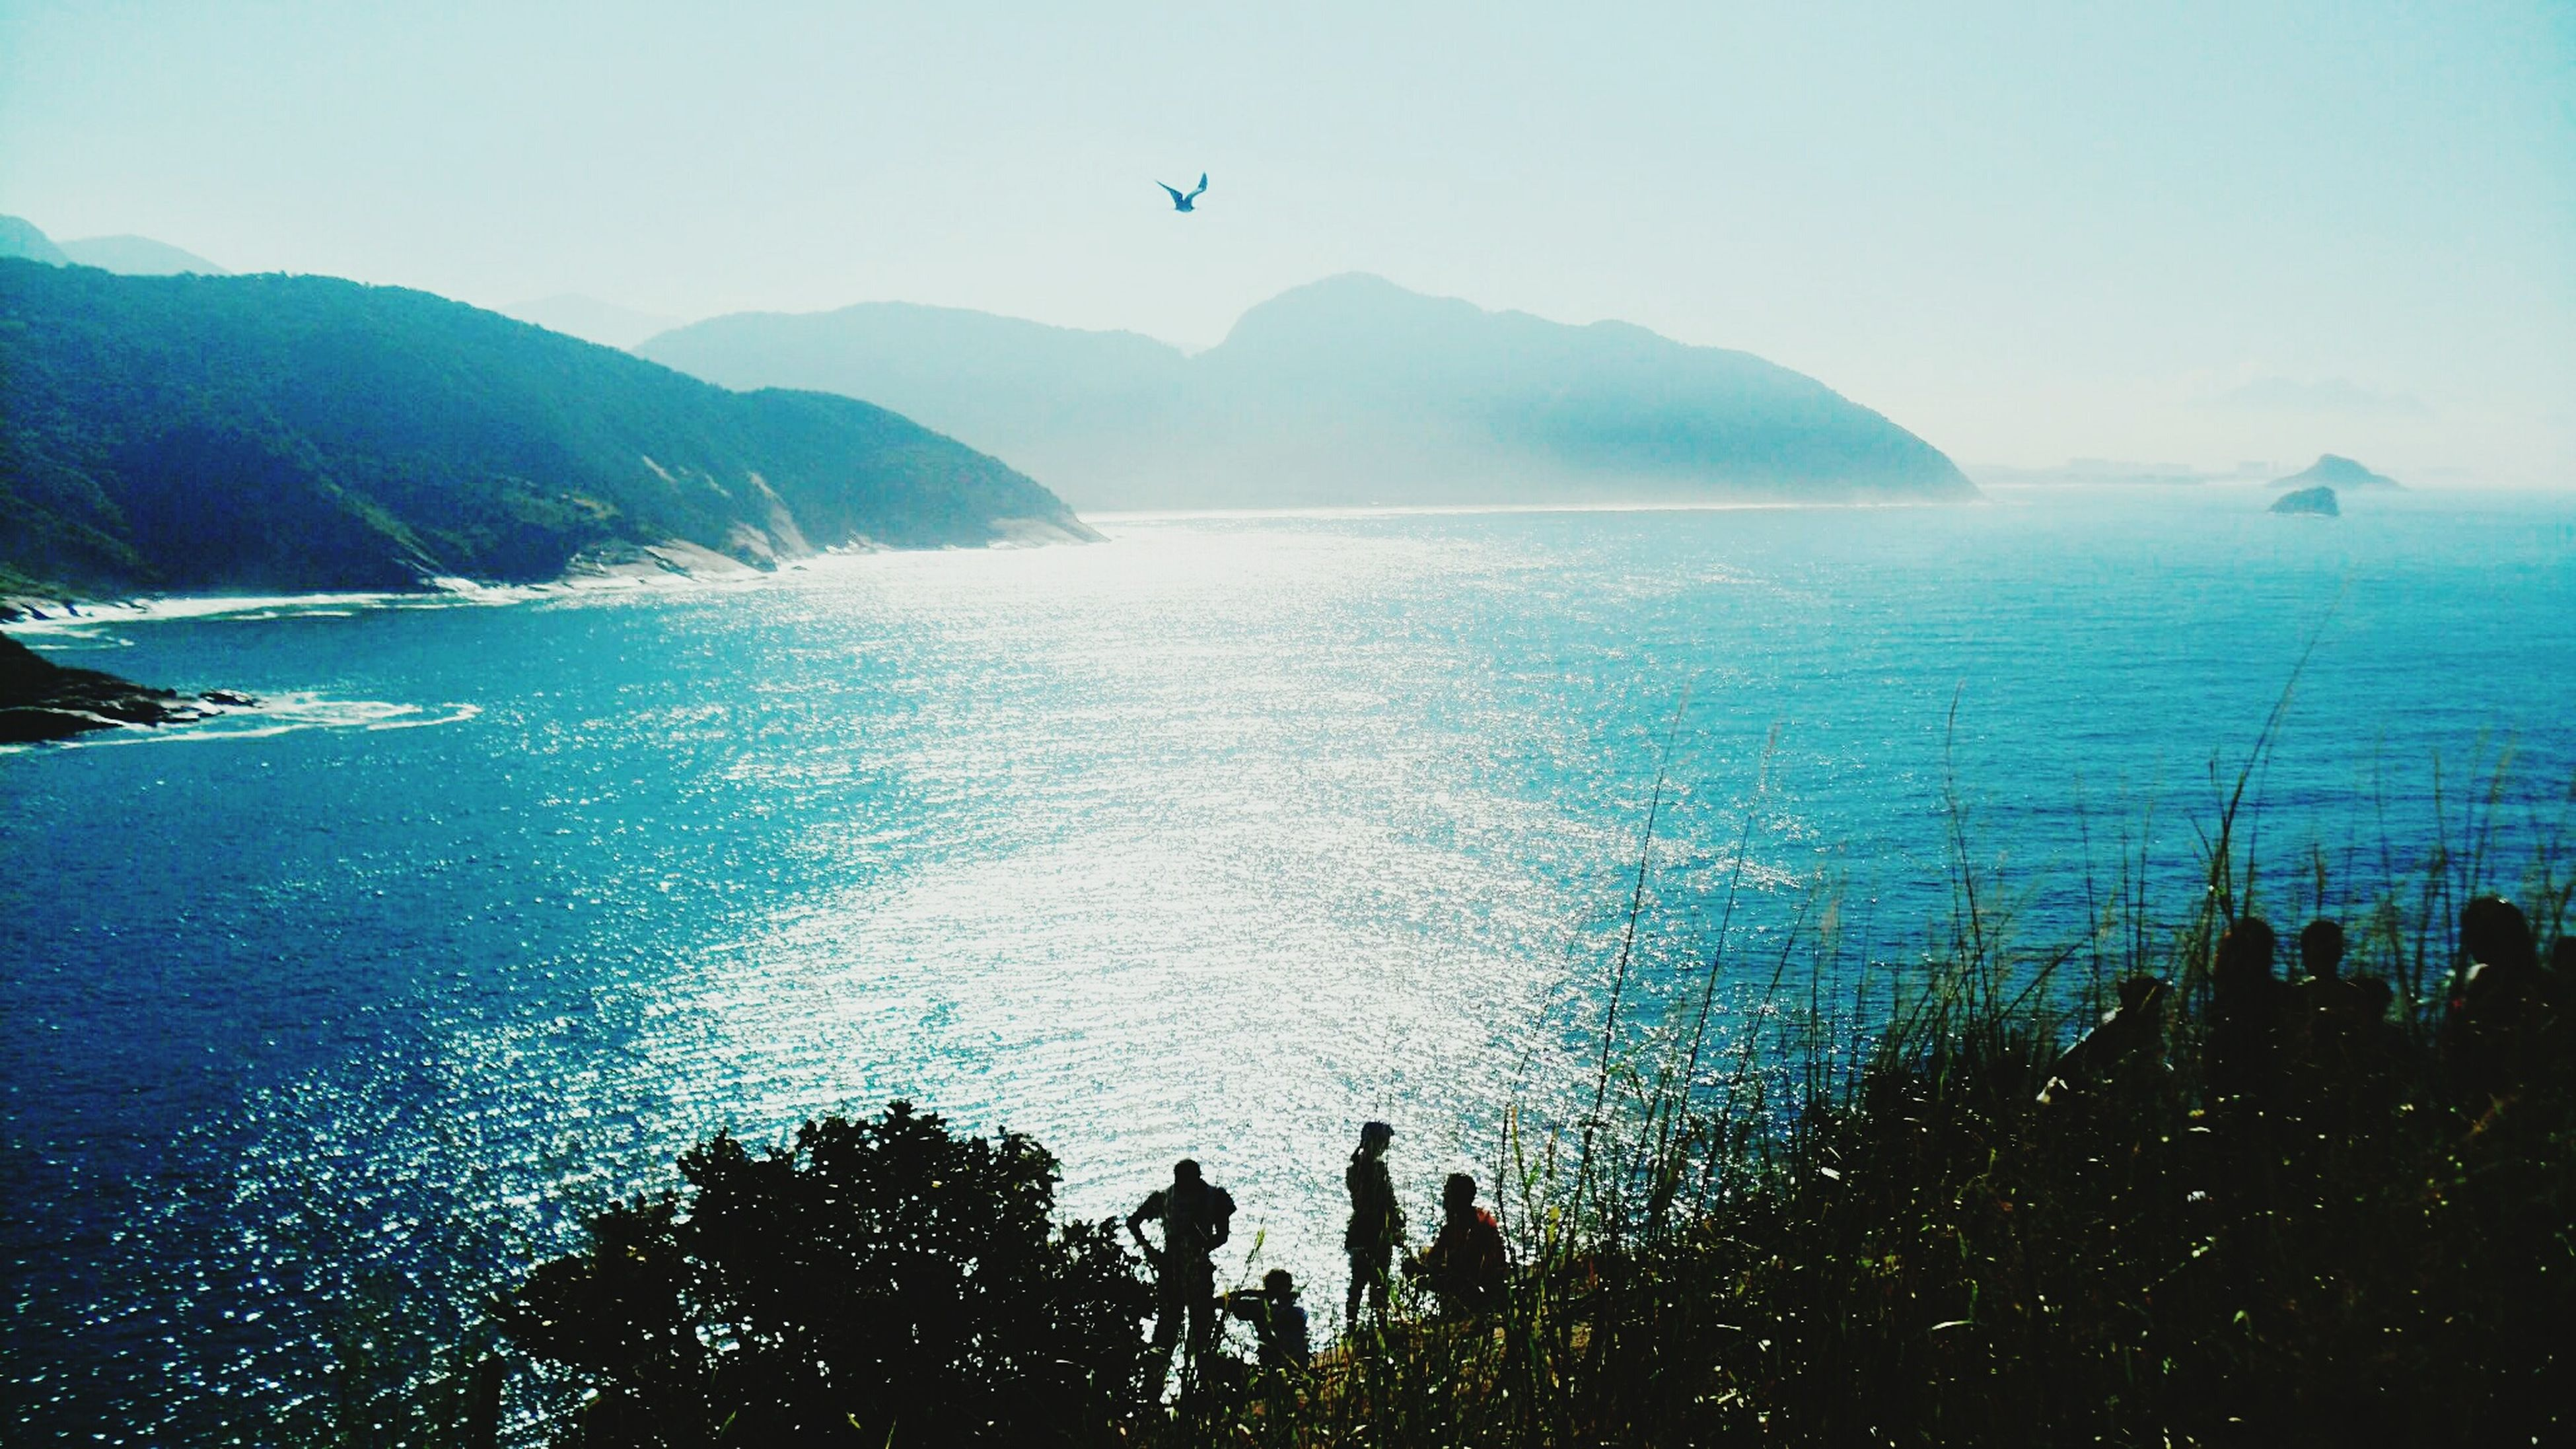 sea, water, scenics, tranquil scene, mountain, beauty in nature, tranquility, horizon over water, blue, nature, clear sky, sky, idyllic, coastline, seascape, outdoors, mountain range, no people, day, ocean